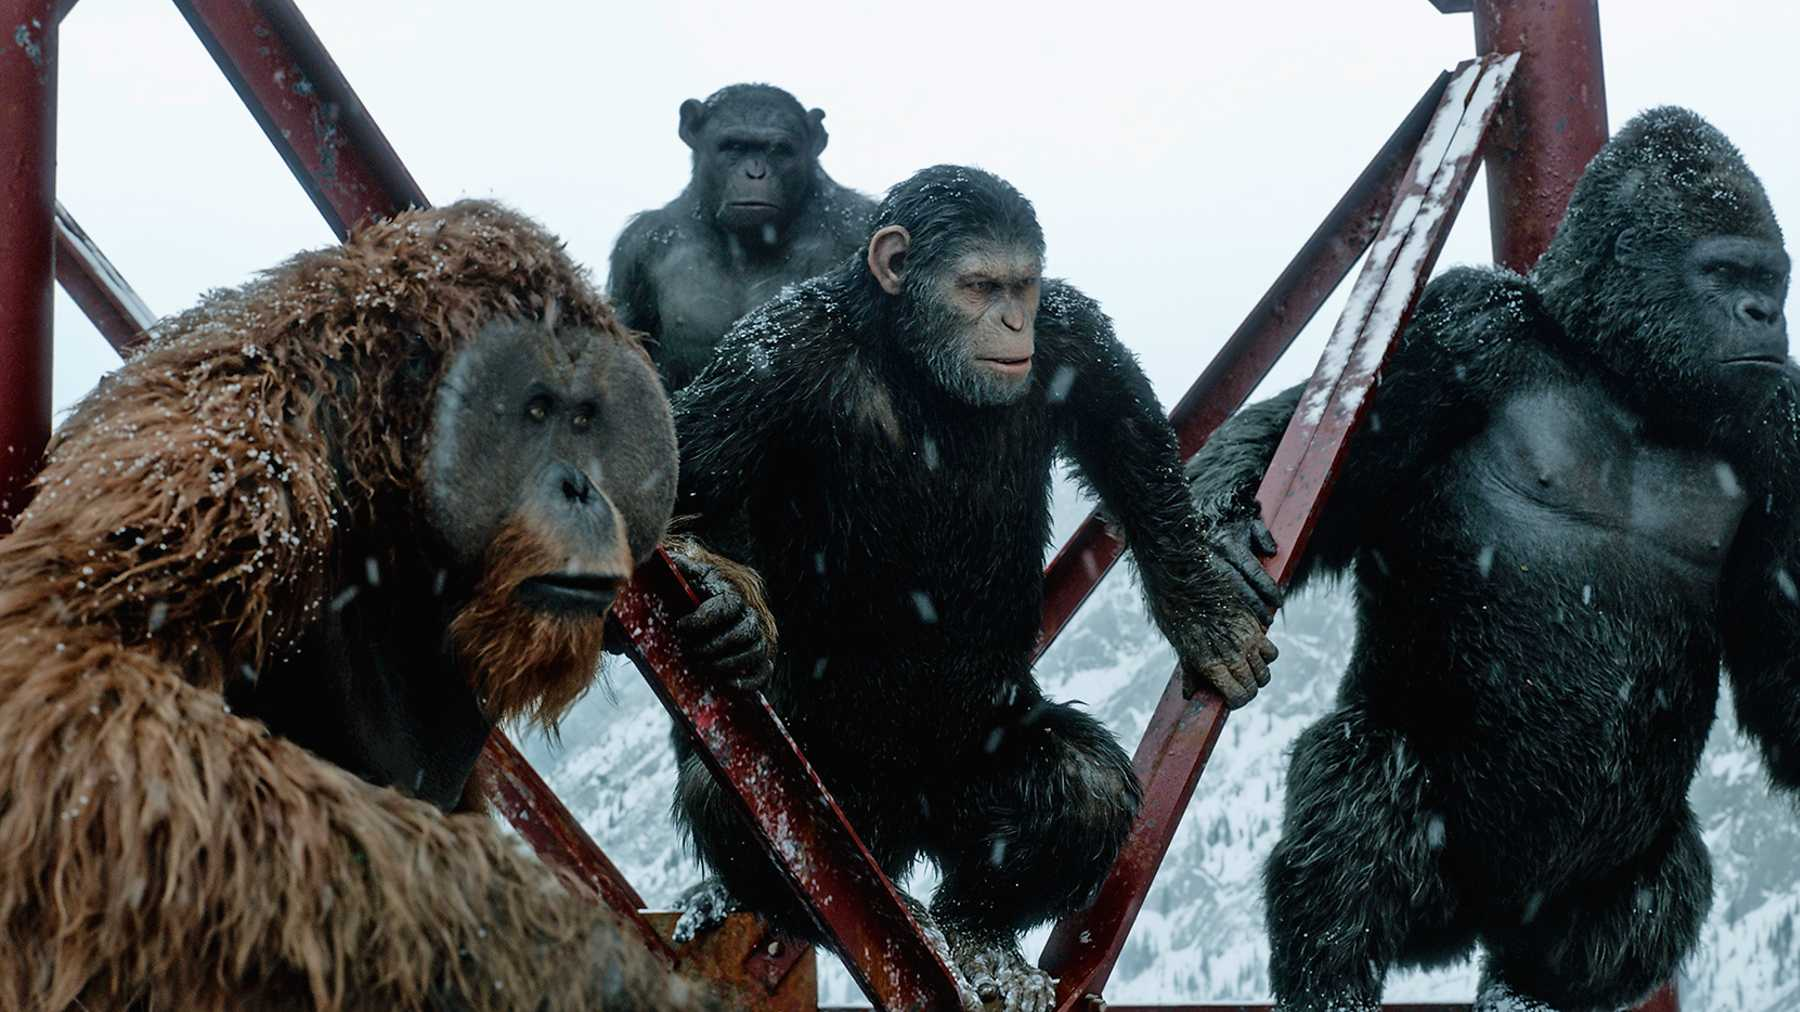 War for the Planet of the Apes Movie Scene